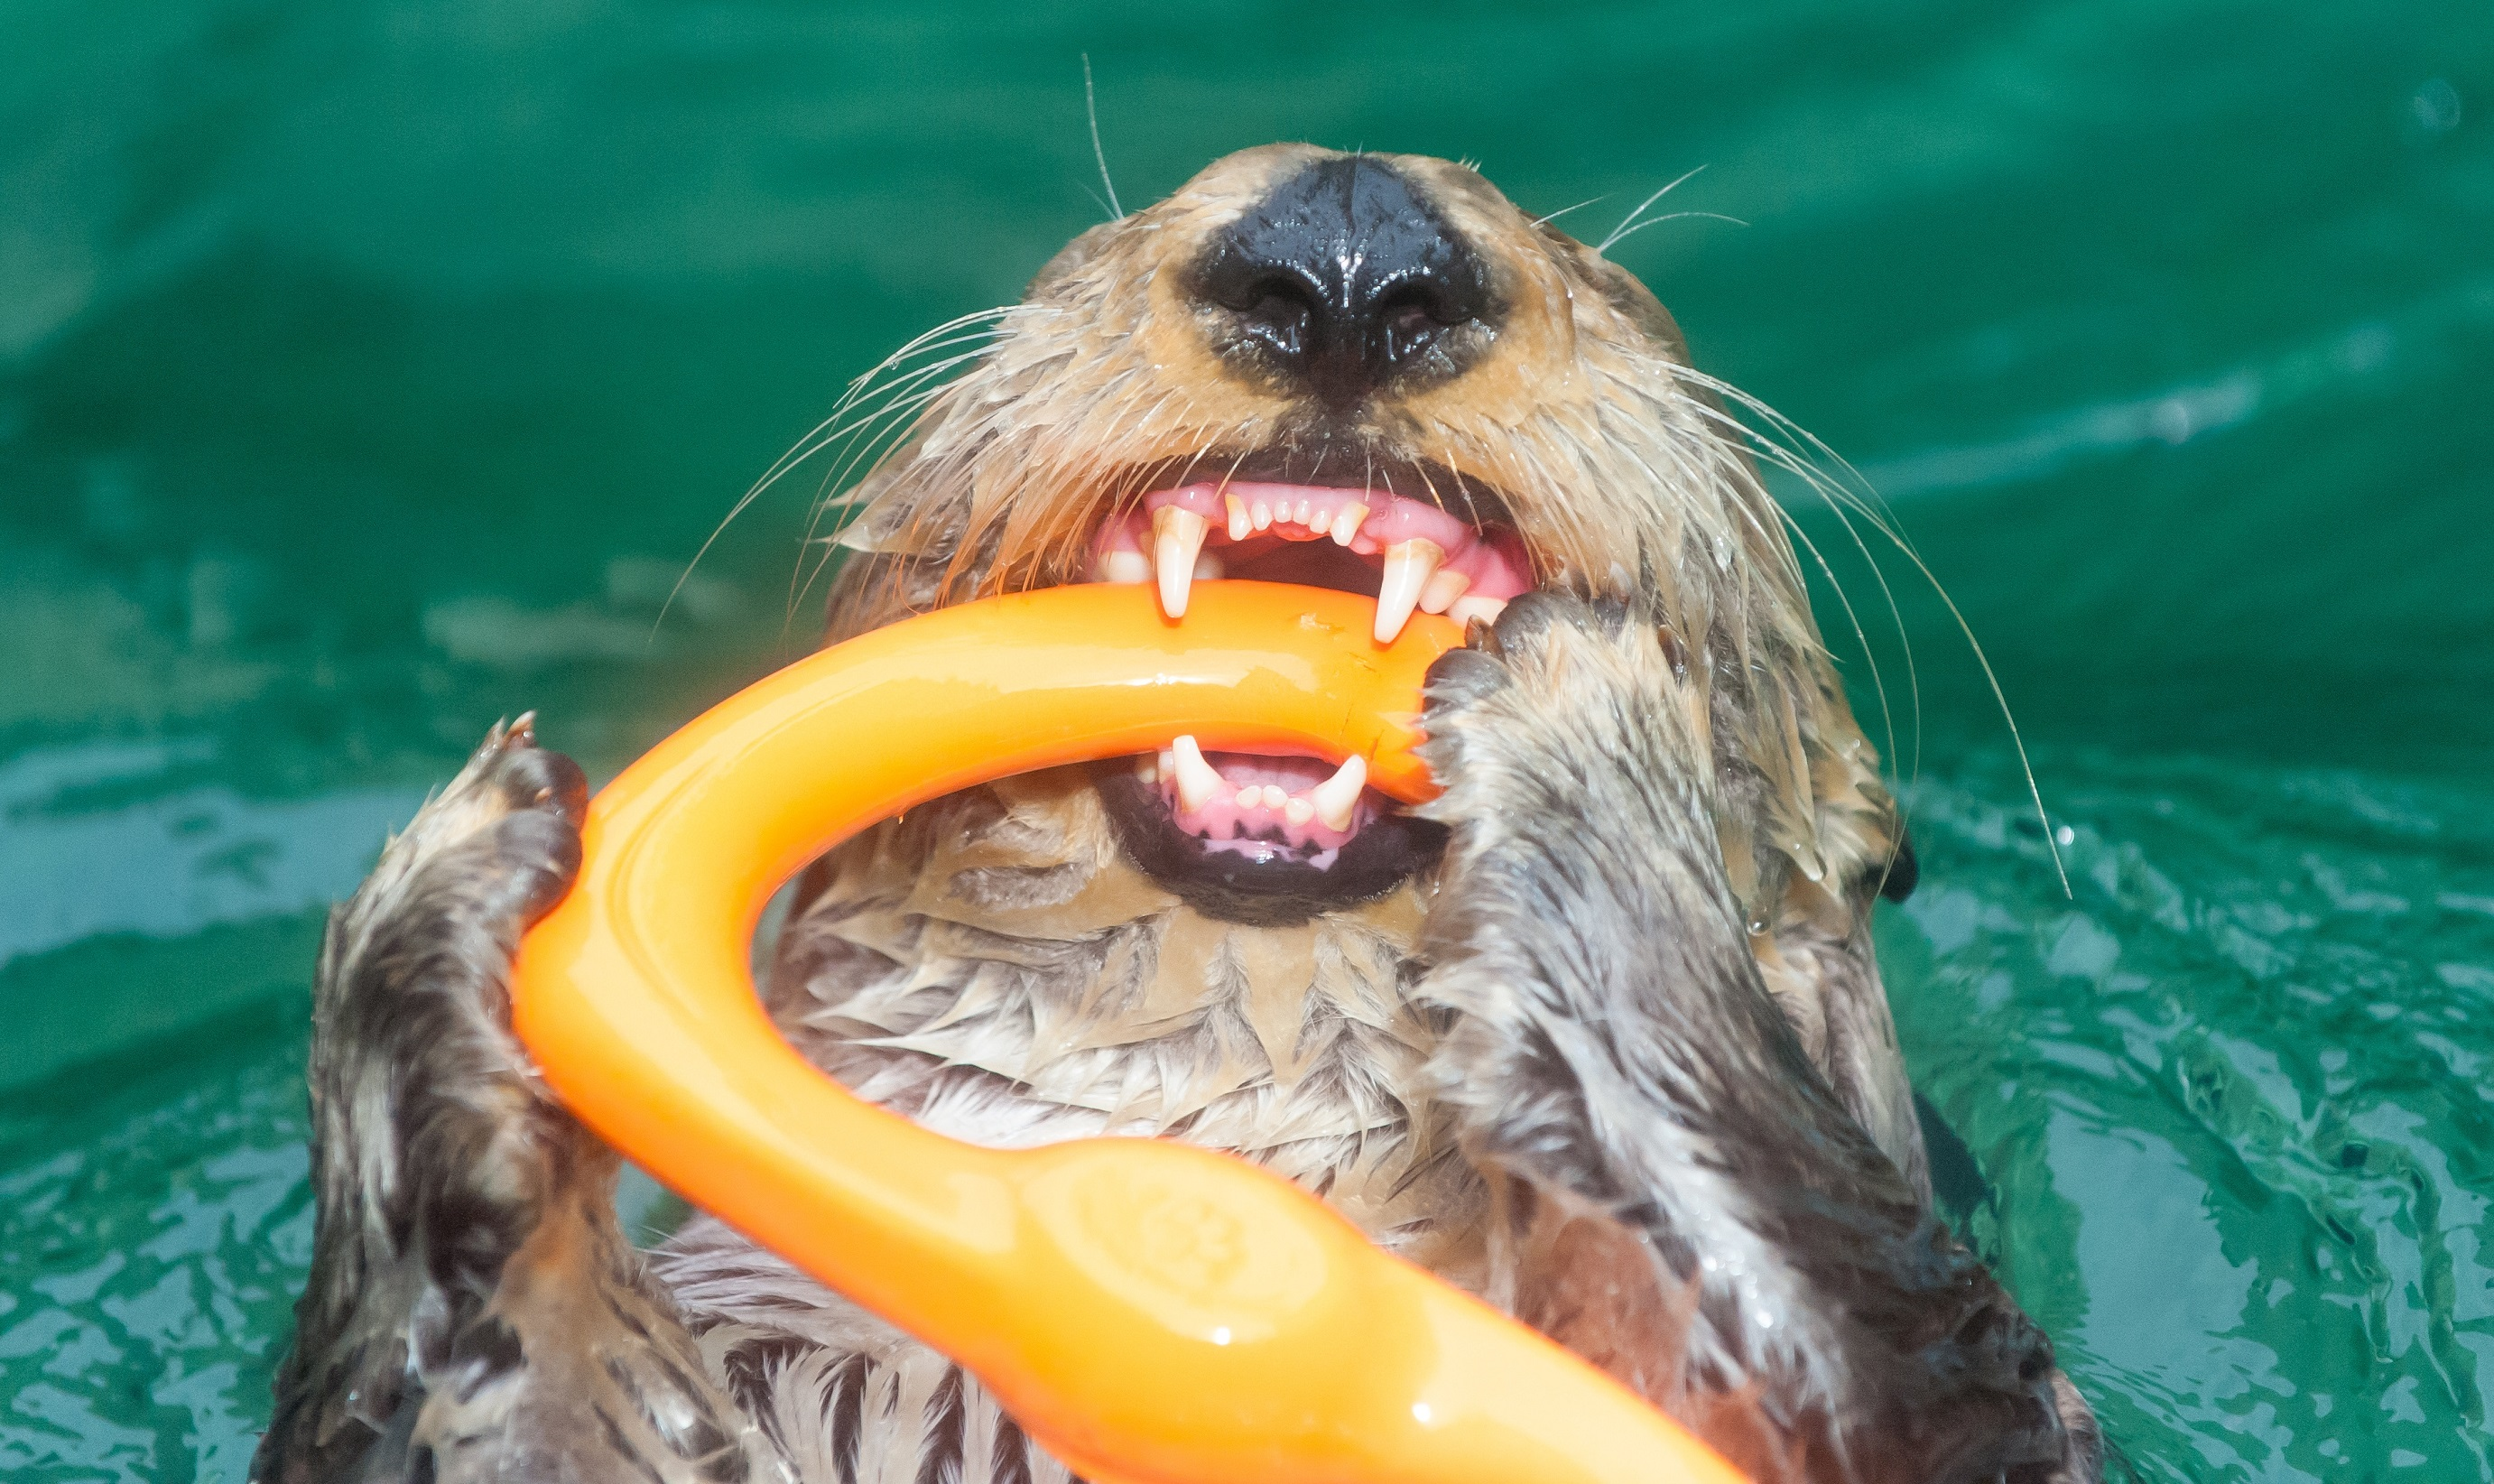 Sea otter with toy